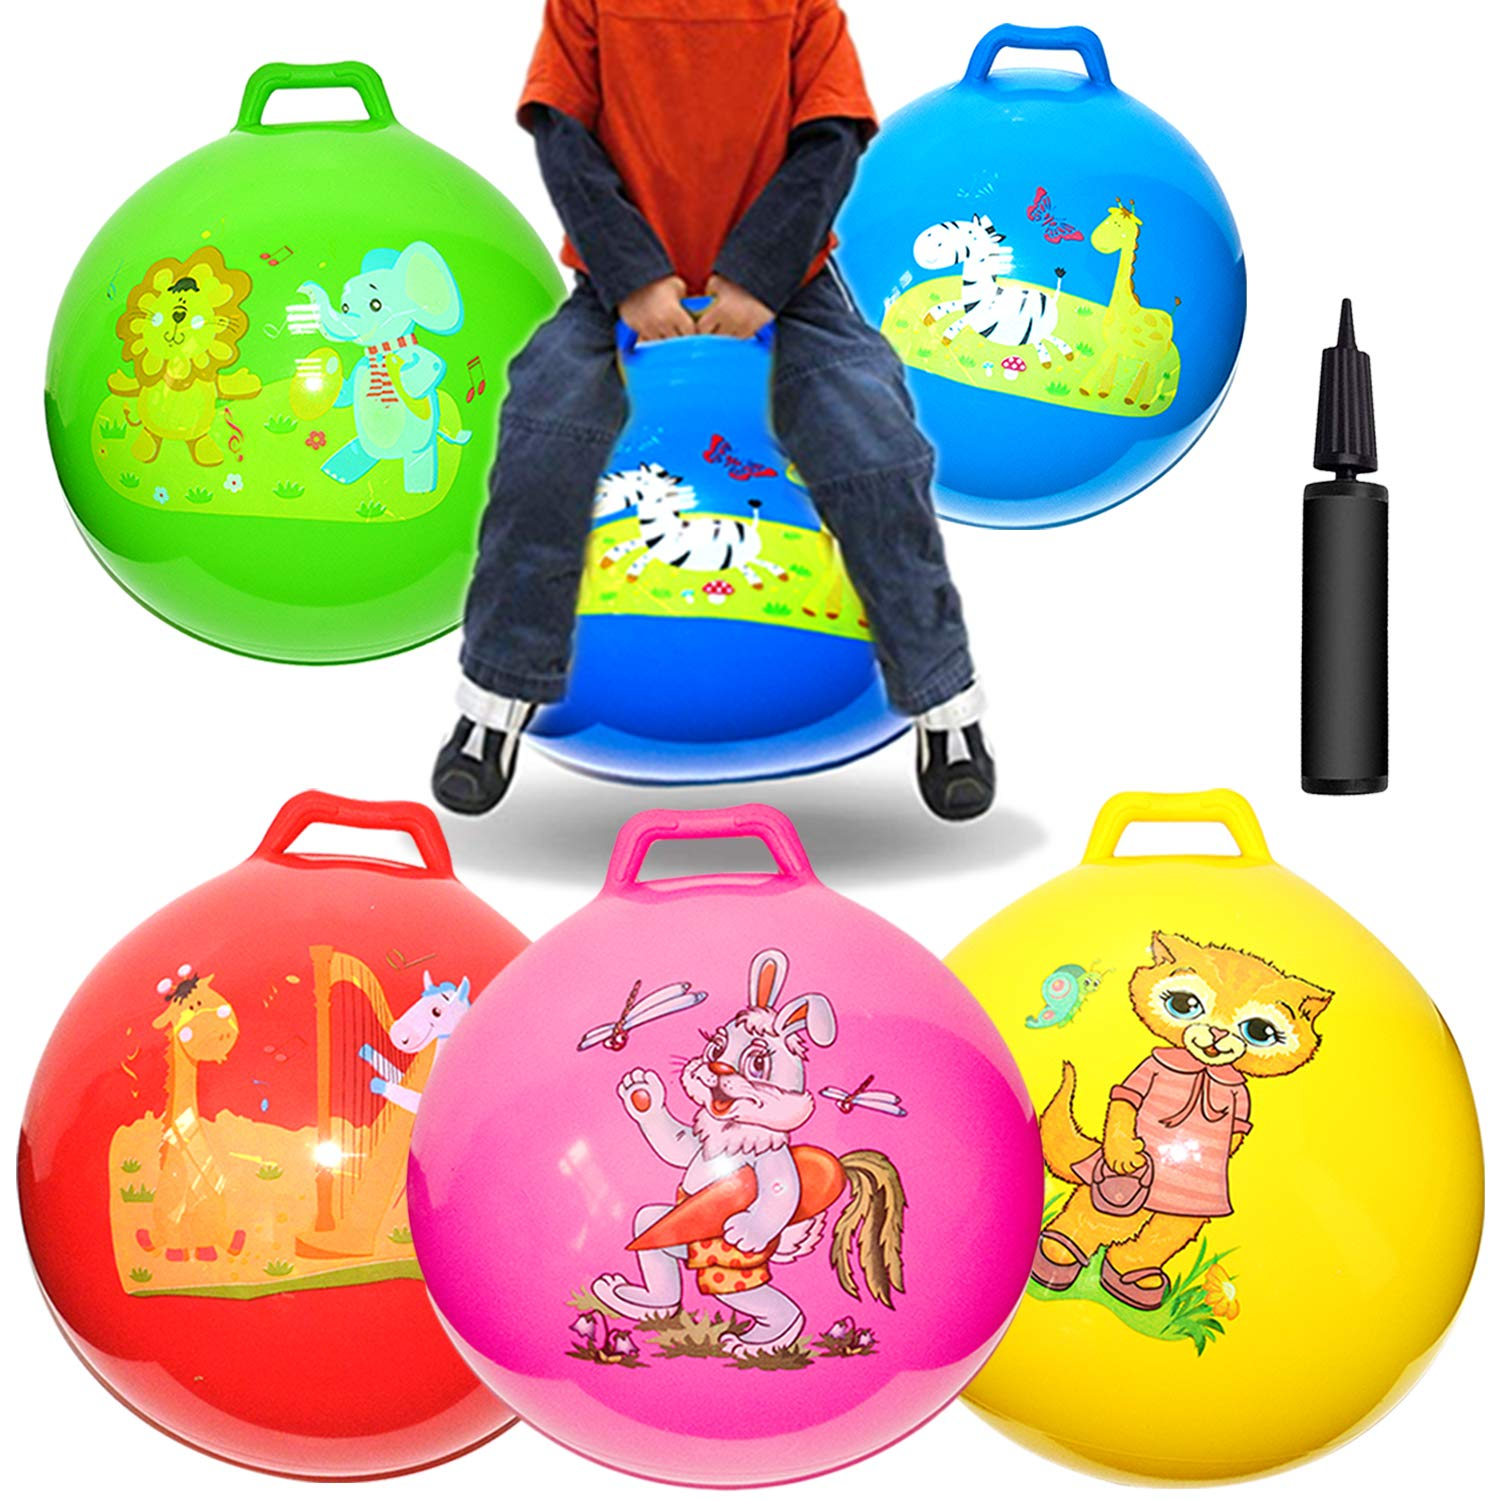 5 Pack Jump Hopper Bouncy Hopping Ball 18 inch with Handle Party Favors for Kids 3-6 Years,School Team Ride and Jumping Party by HongMe